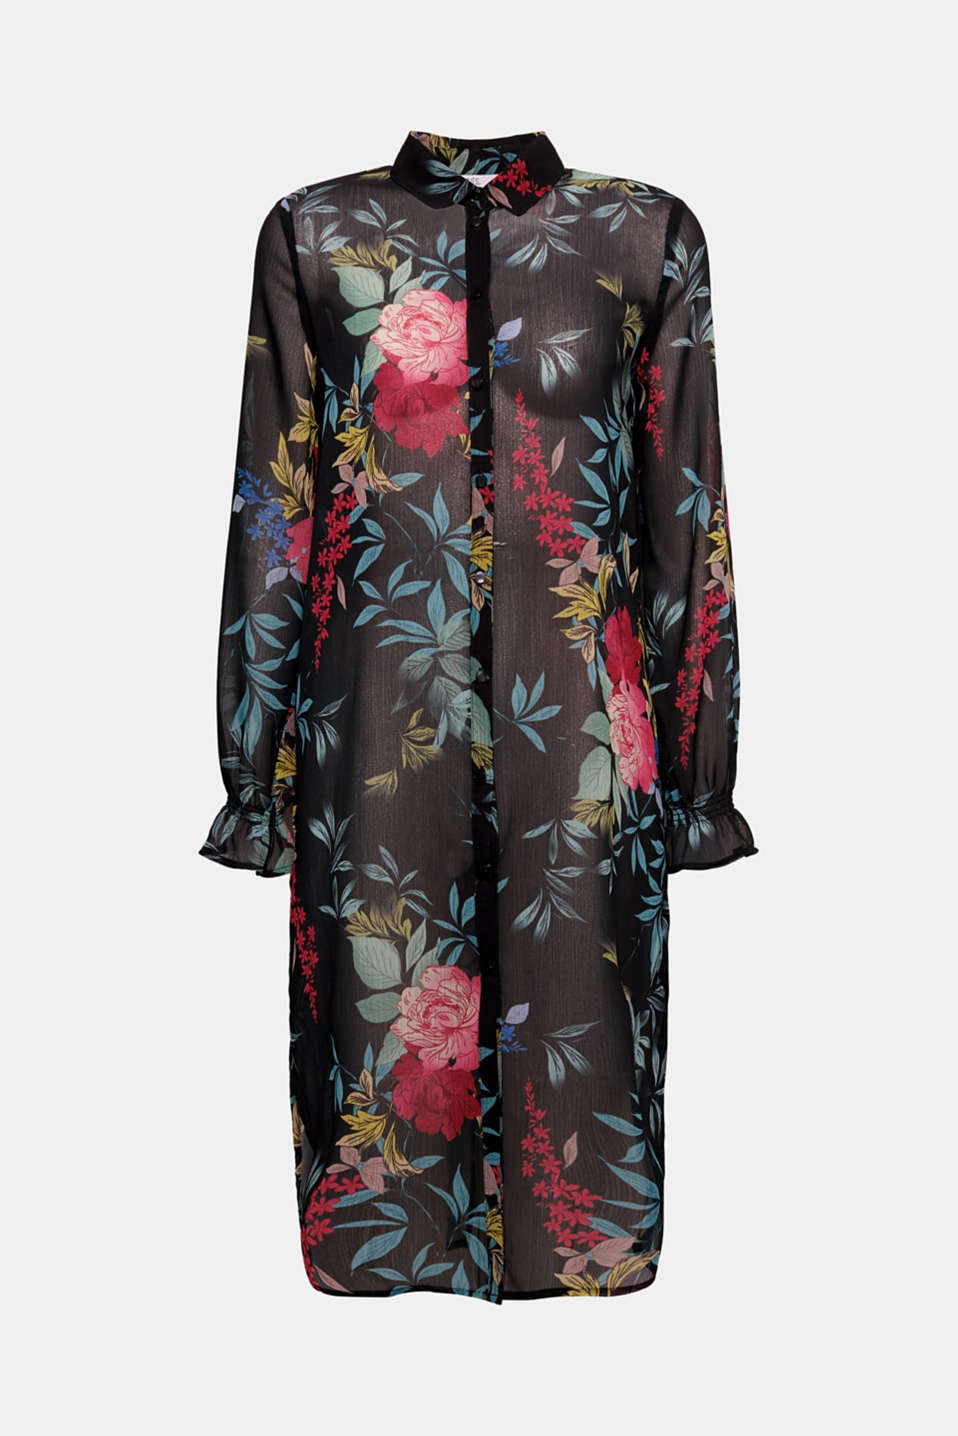 This long chiffon blouse with an all-over, floral pattern adds a fantastic finishing touch to summery, layered looks.